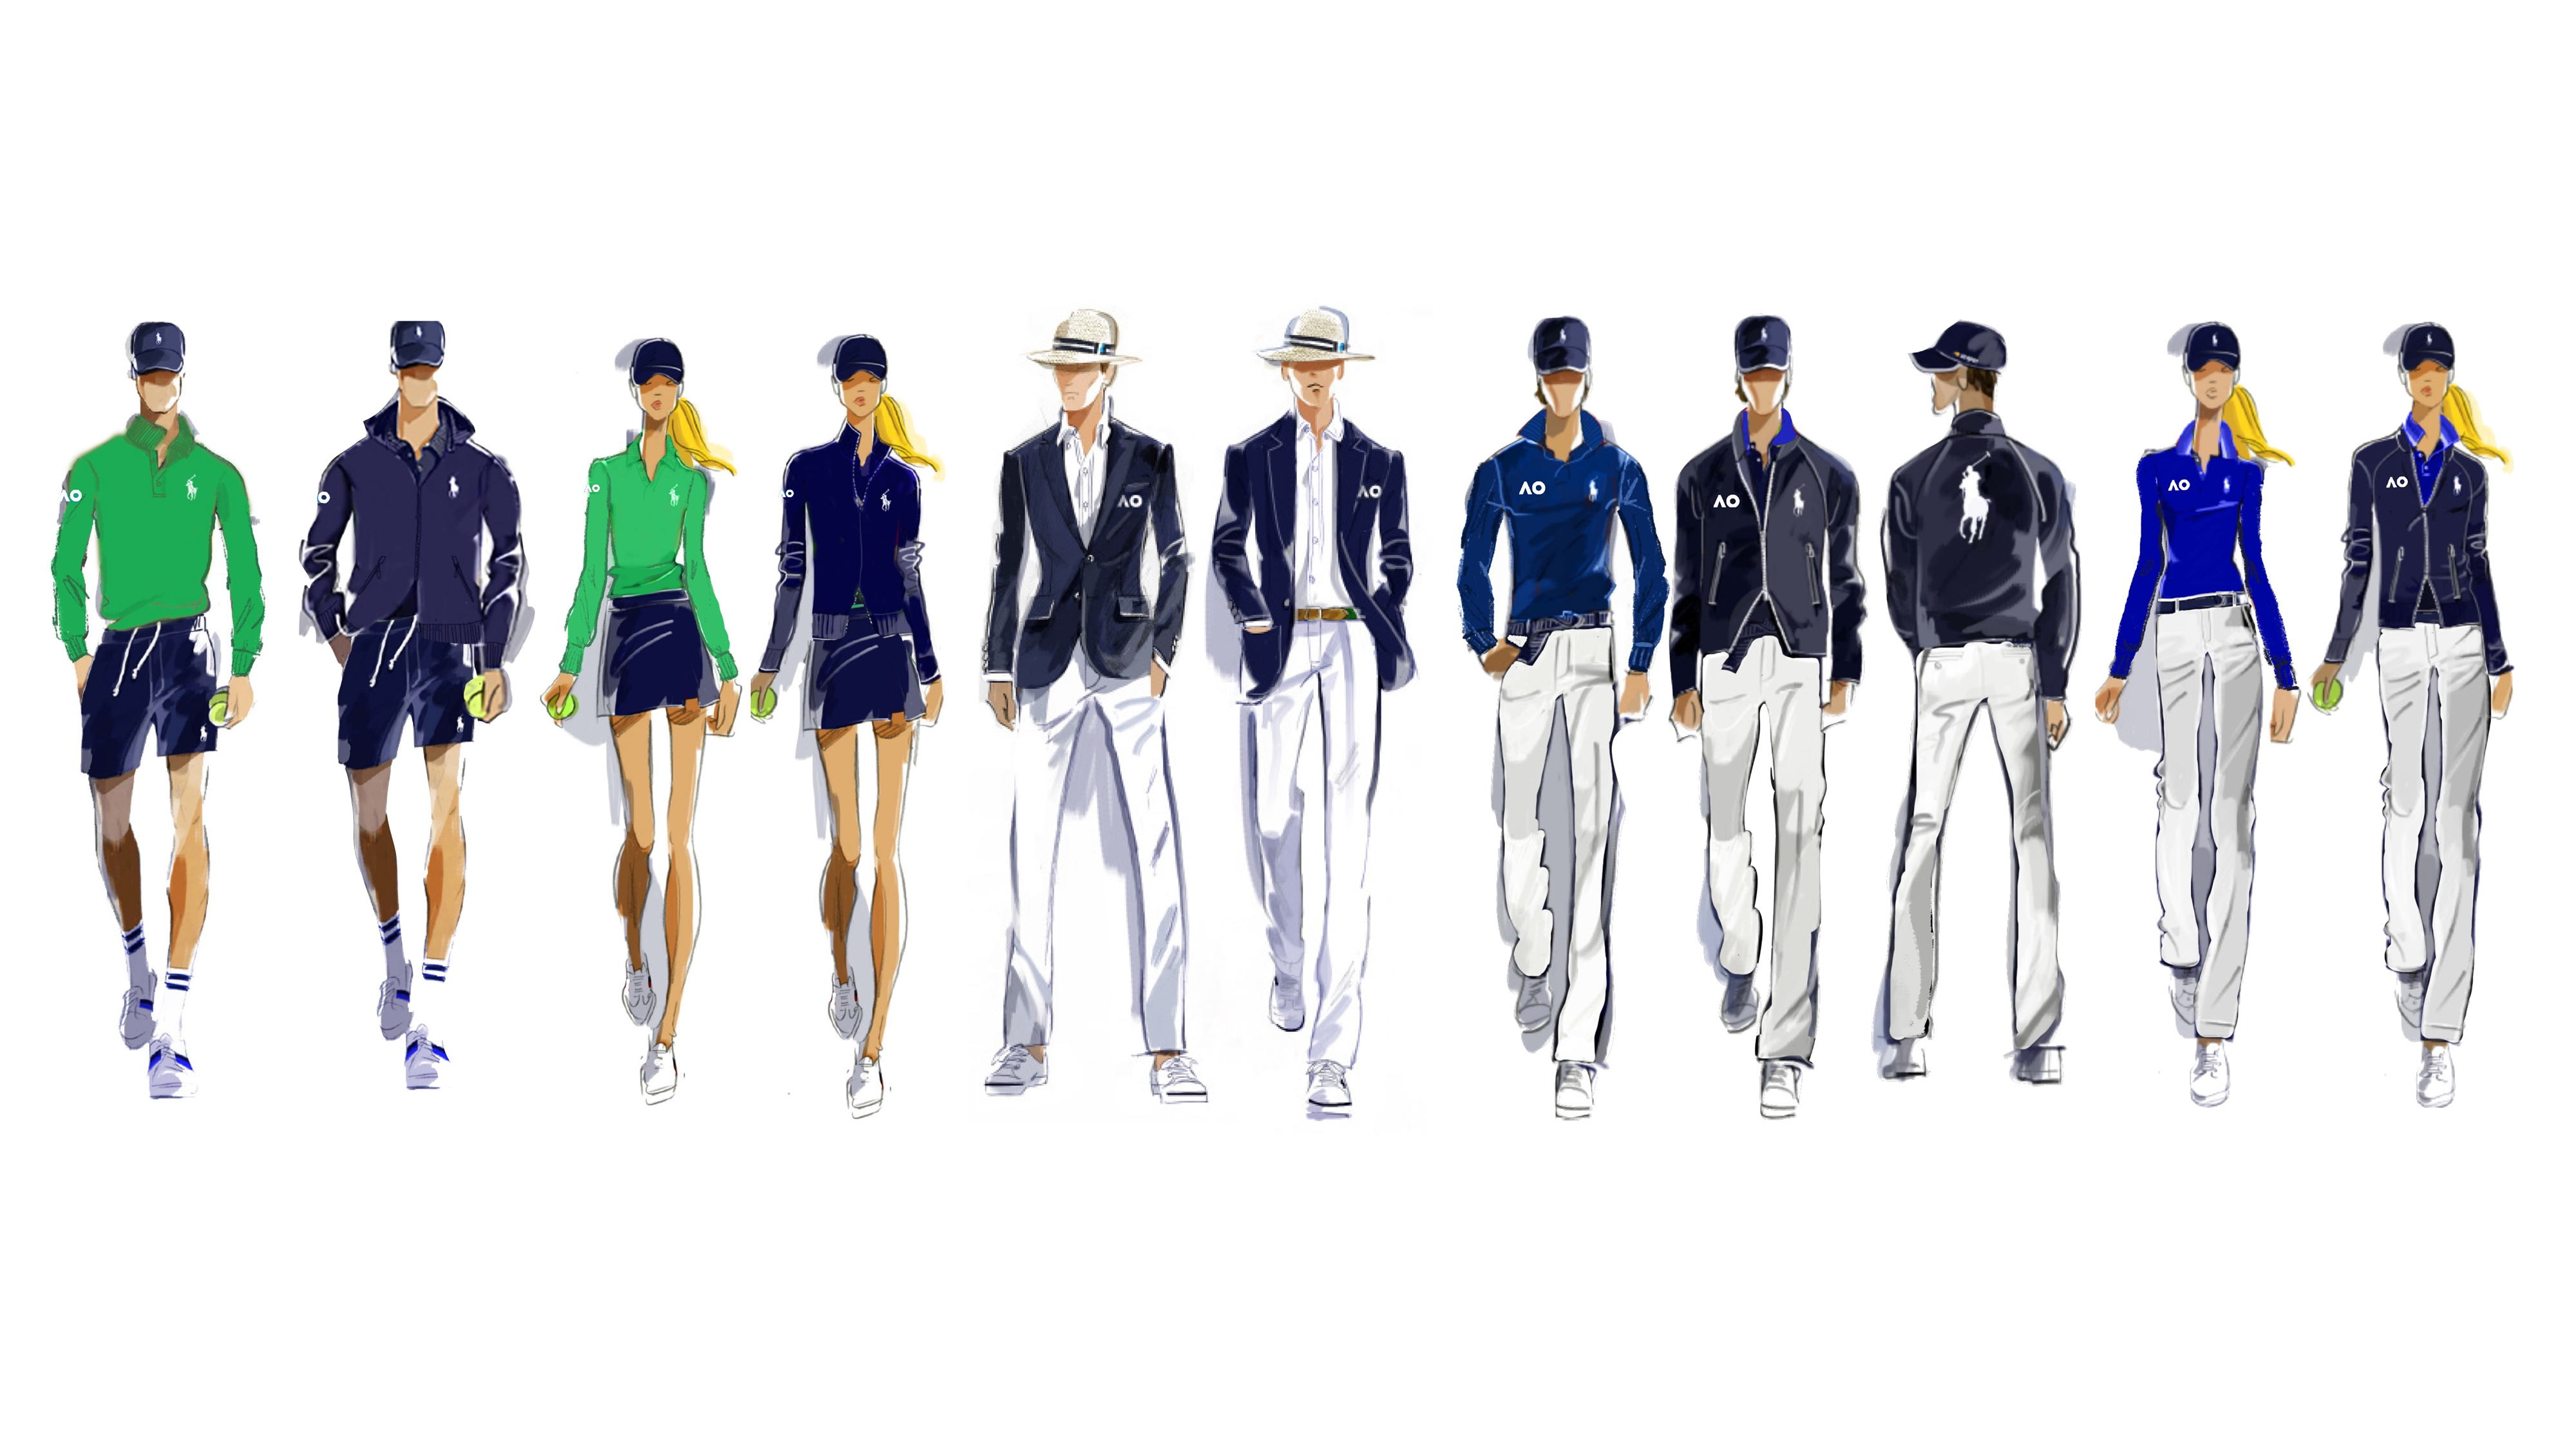 The new official uniforms of the Australian Open tennis tournament designed by Ralph Lauren.